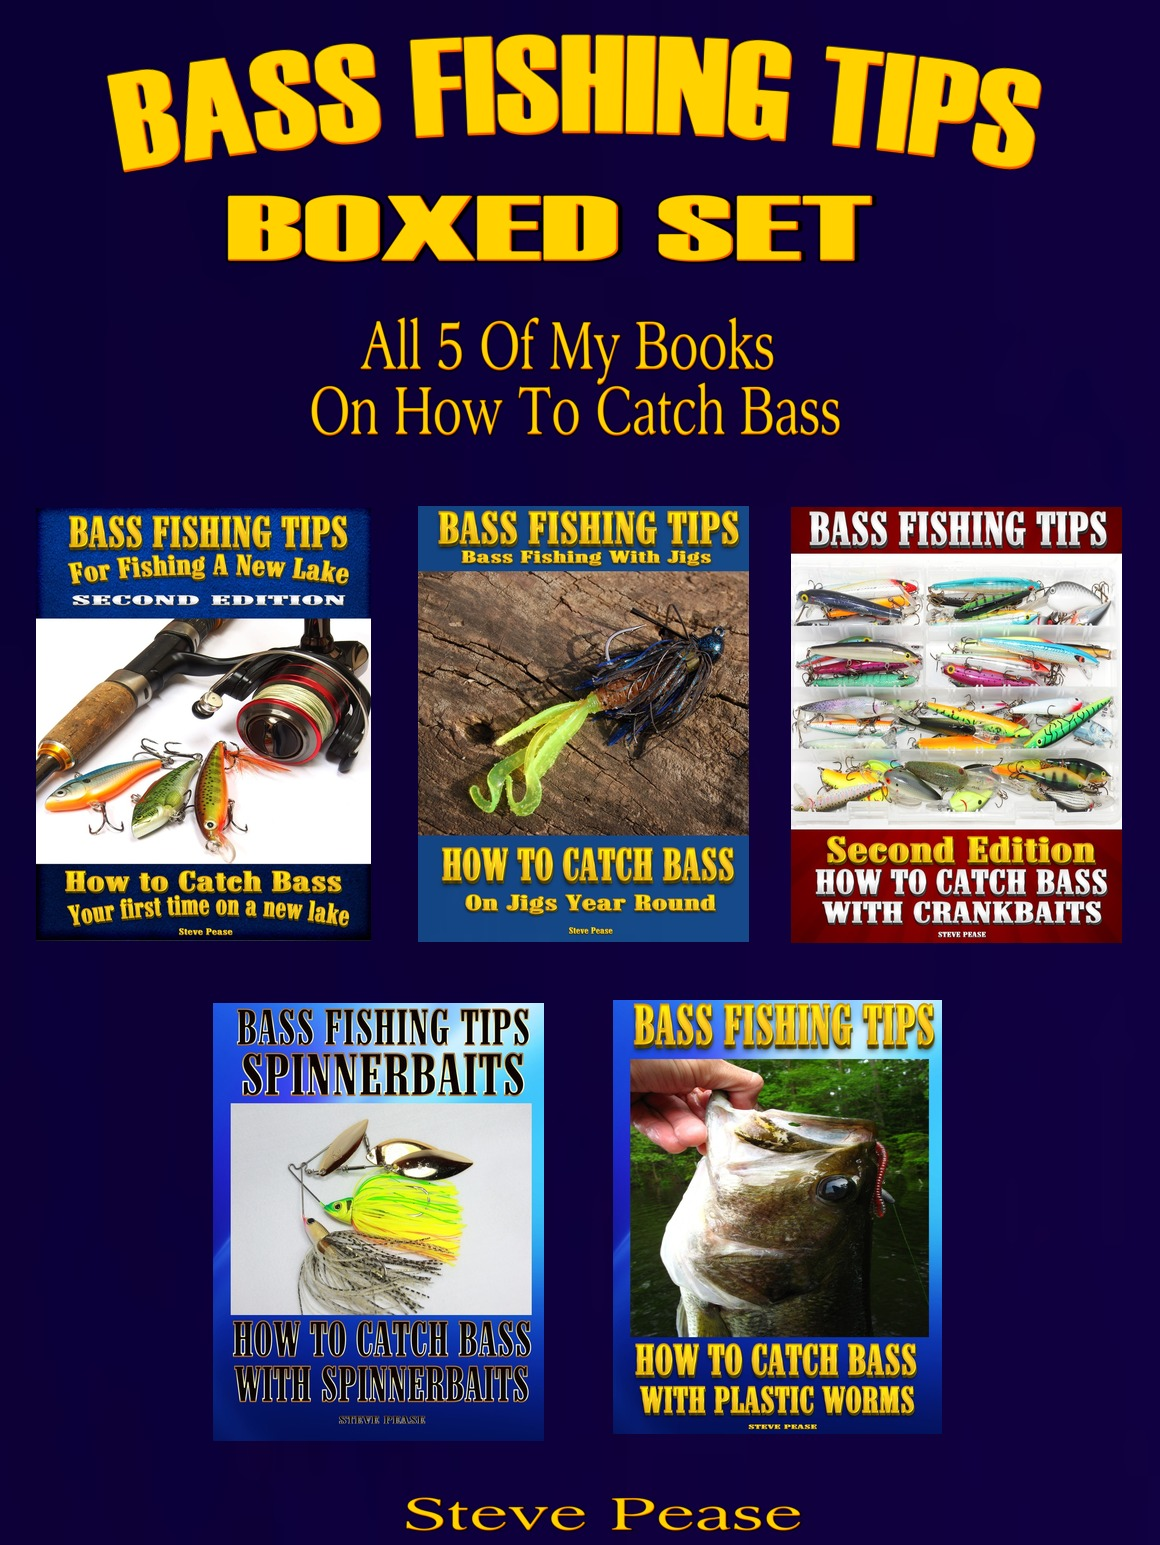 5 GREAT BOOKS ON CATCHING BASS